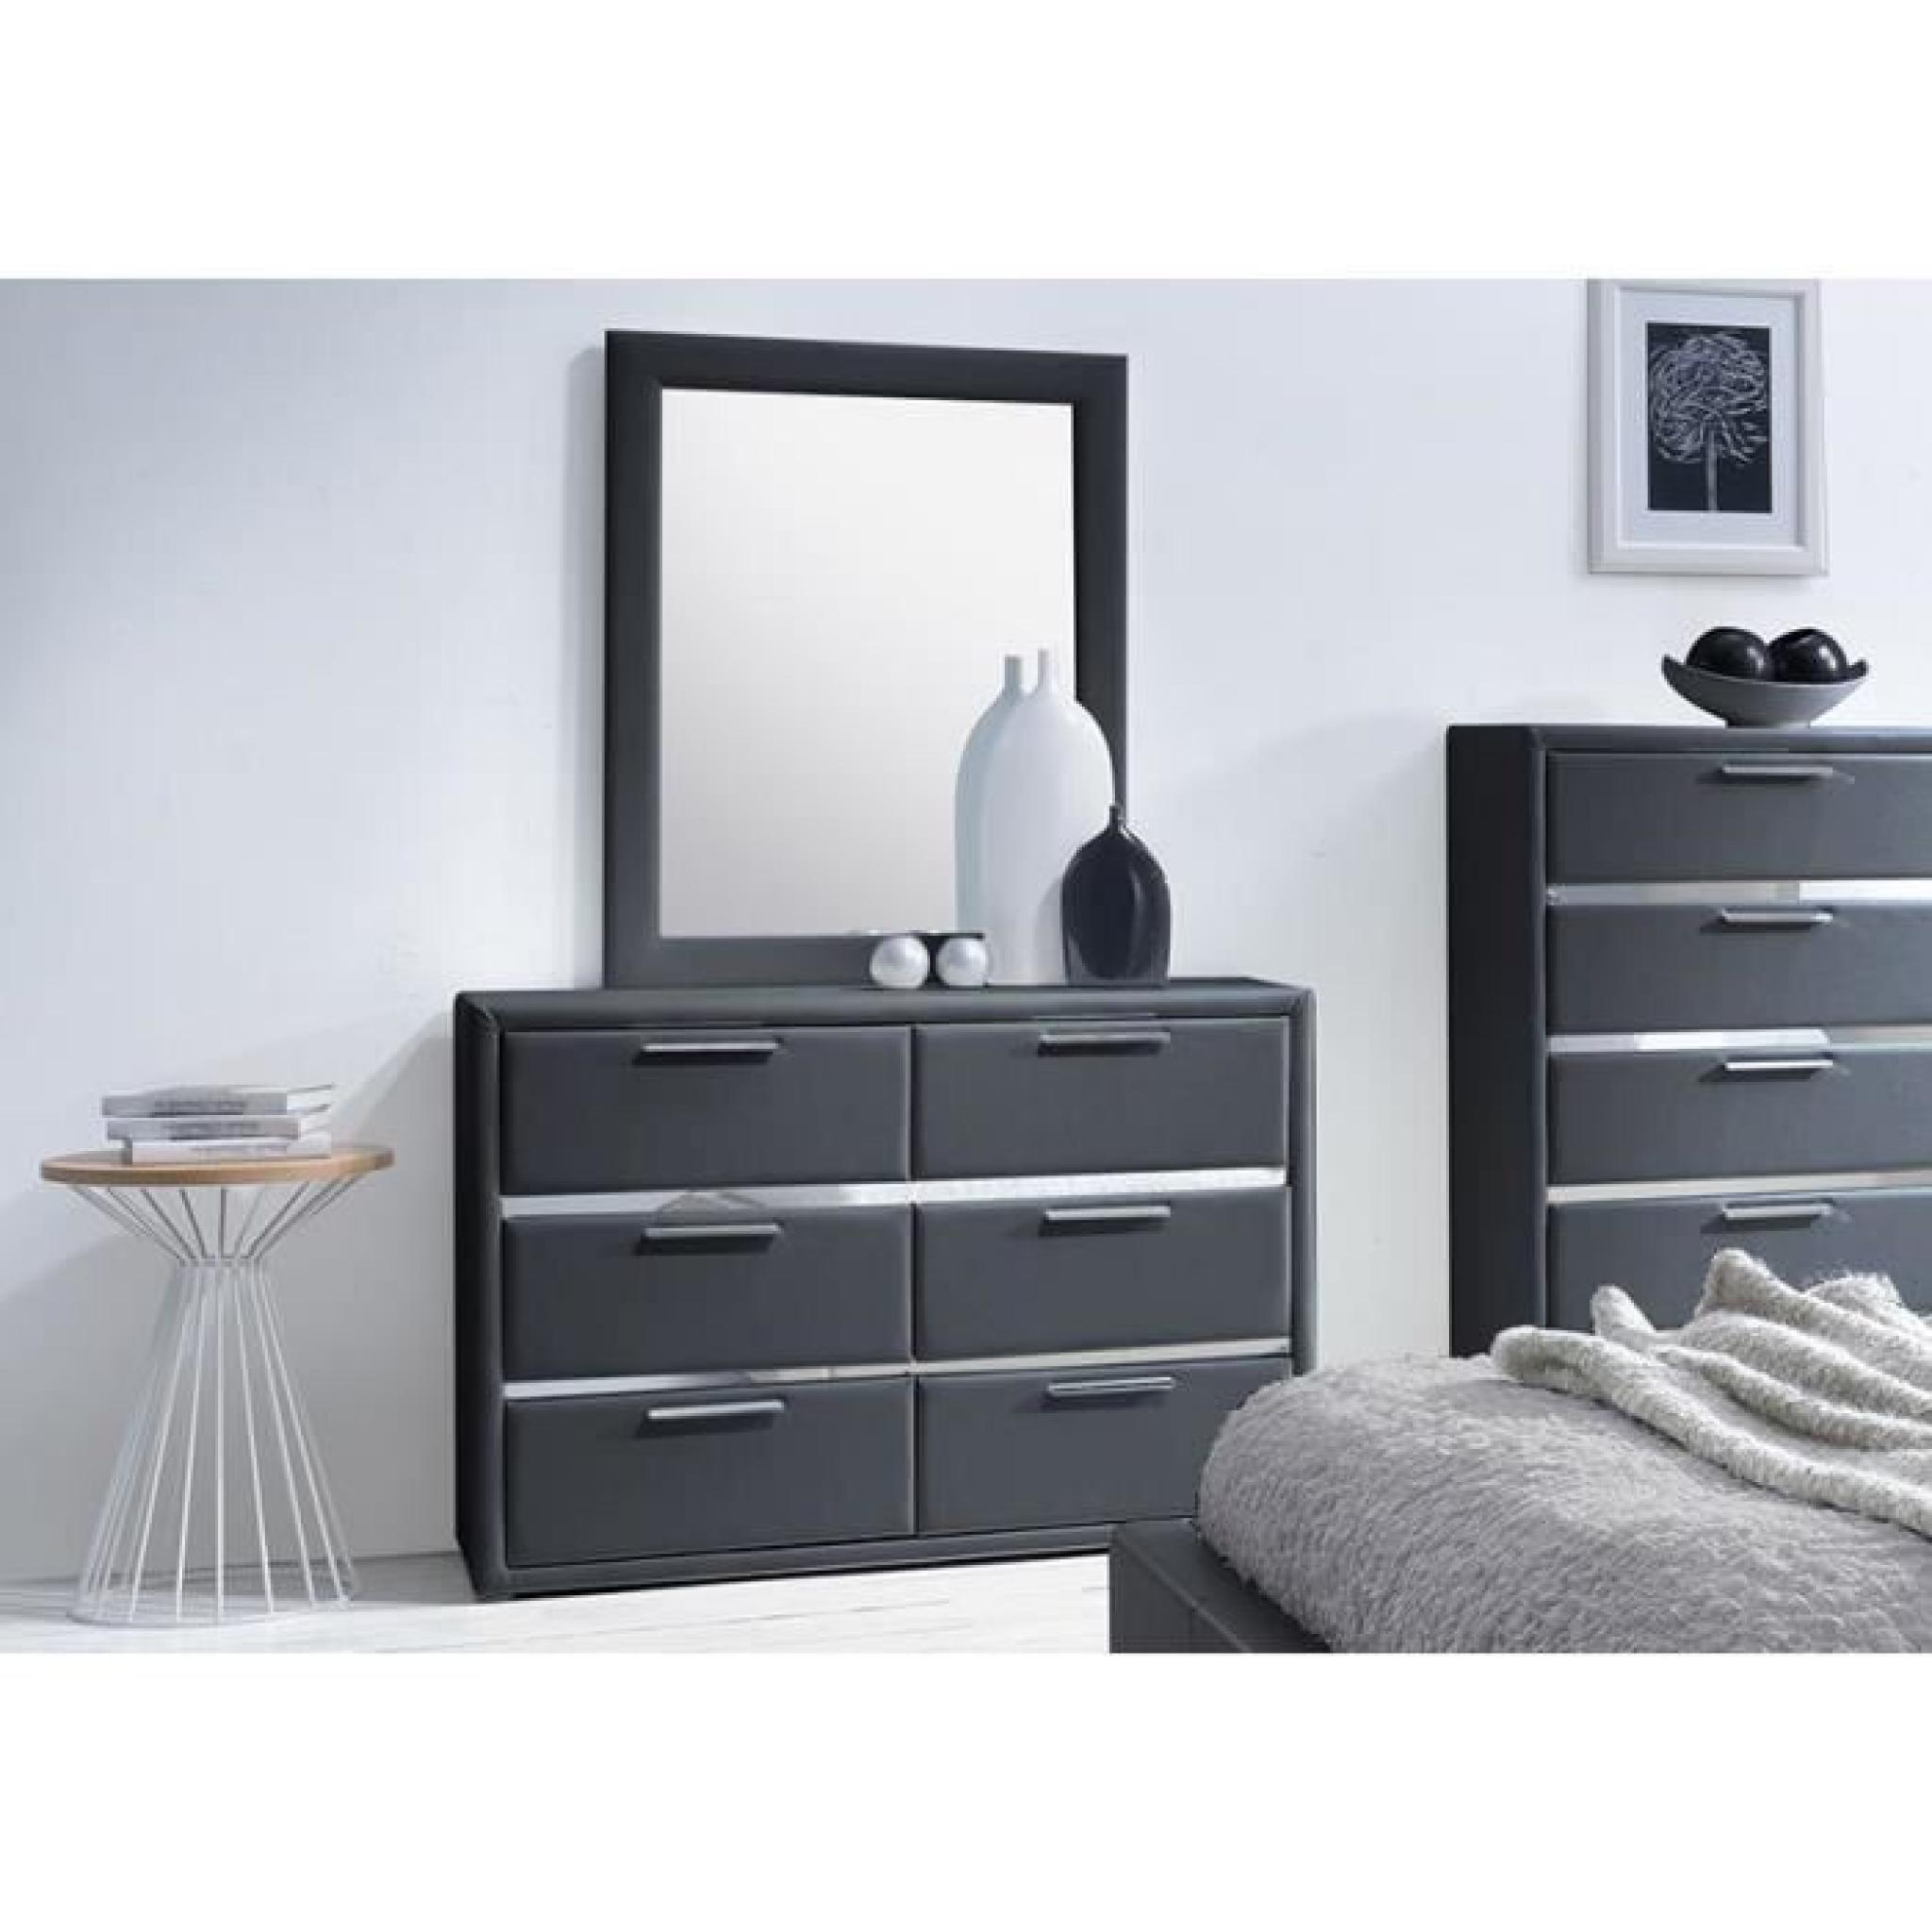 commode miroir pas cher maison design. Black Bedroom Furniture Sets. Home Design Ideas